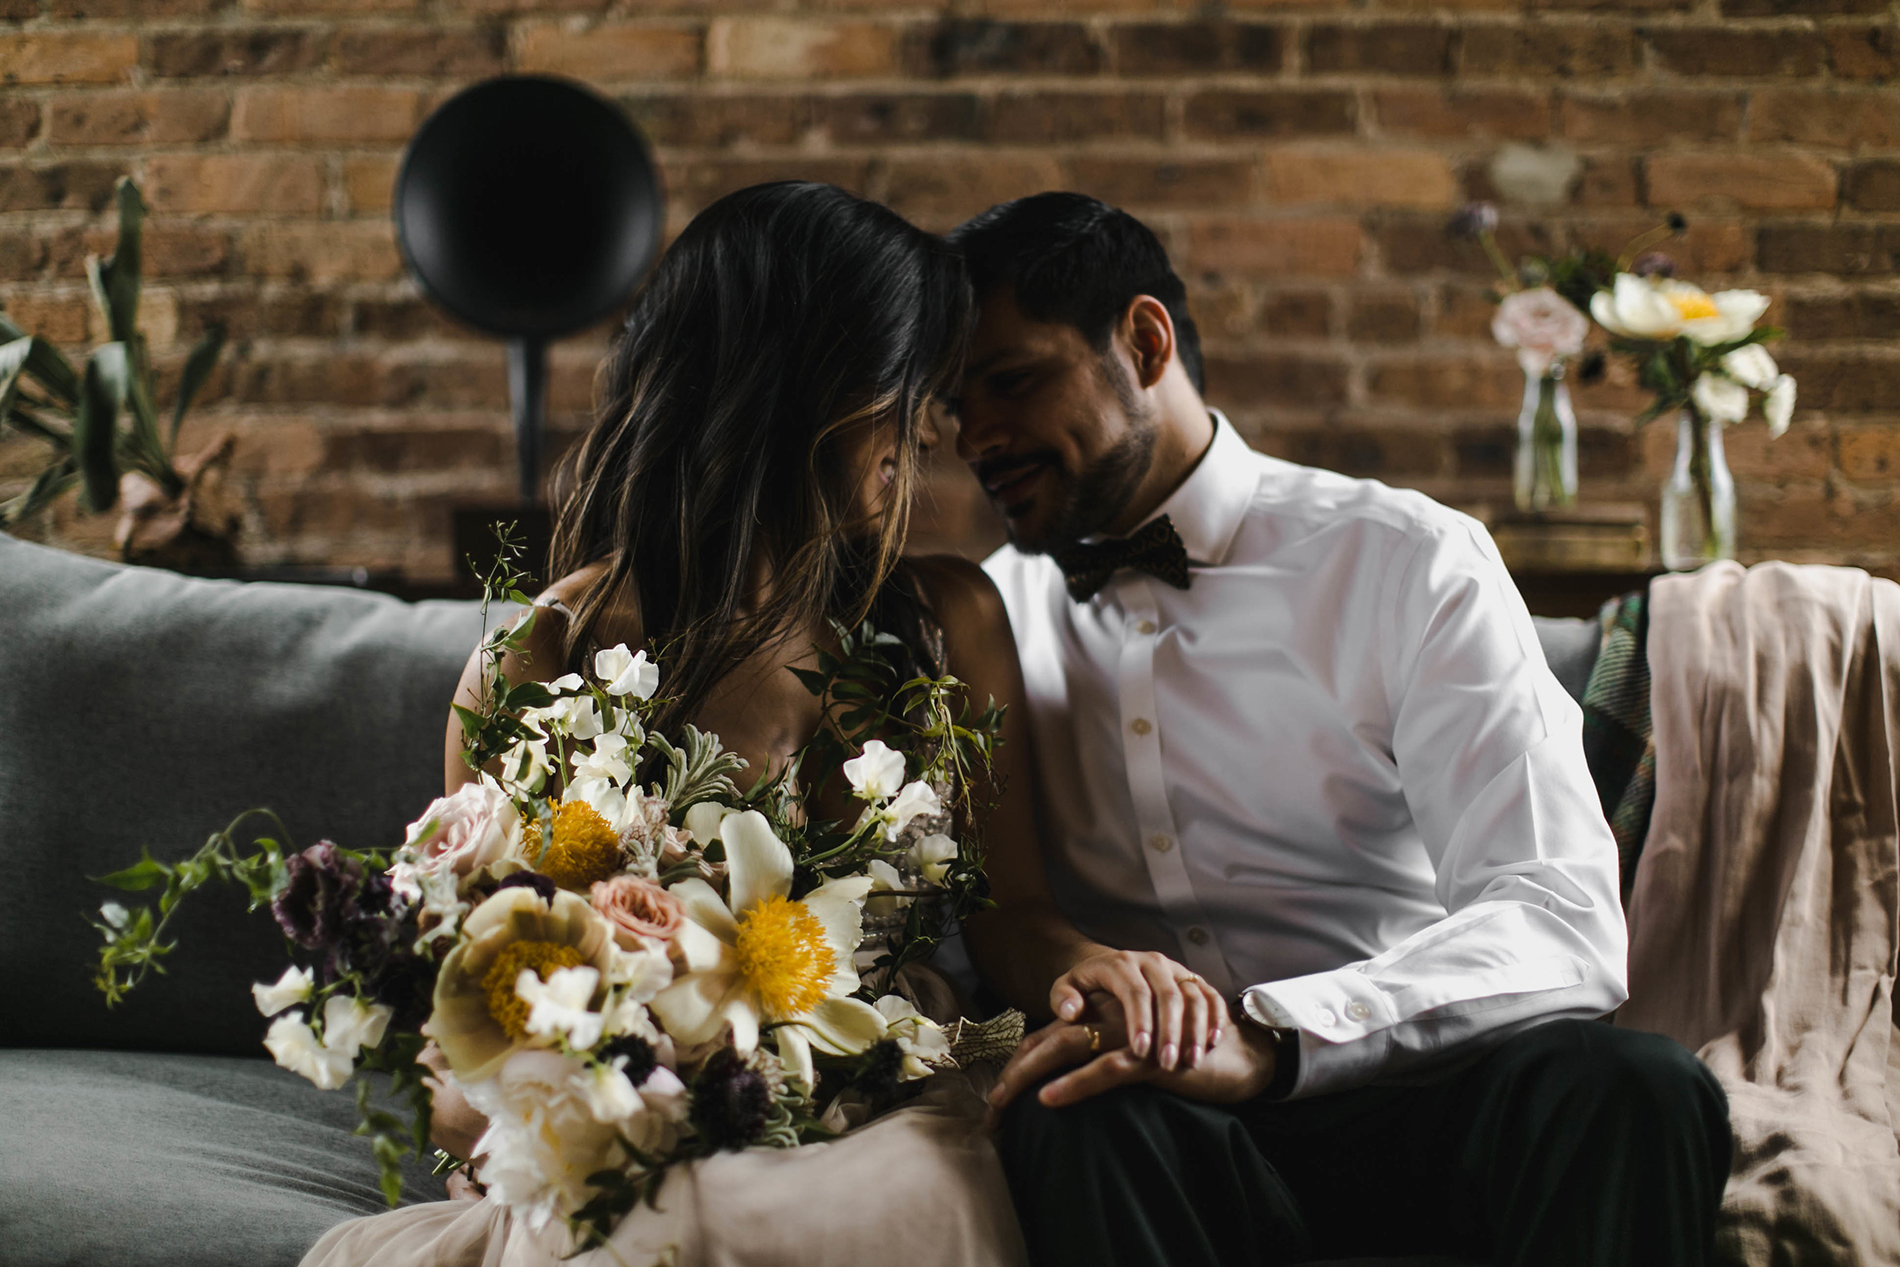 Photo by Melody Joy Co, Styling by All Dei Events, Florals by Splendor of Eden, Jewelry by Lady Faye Jewelry